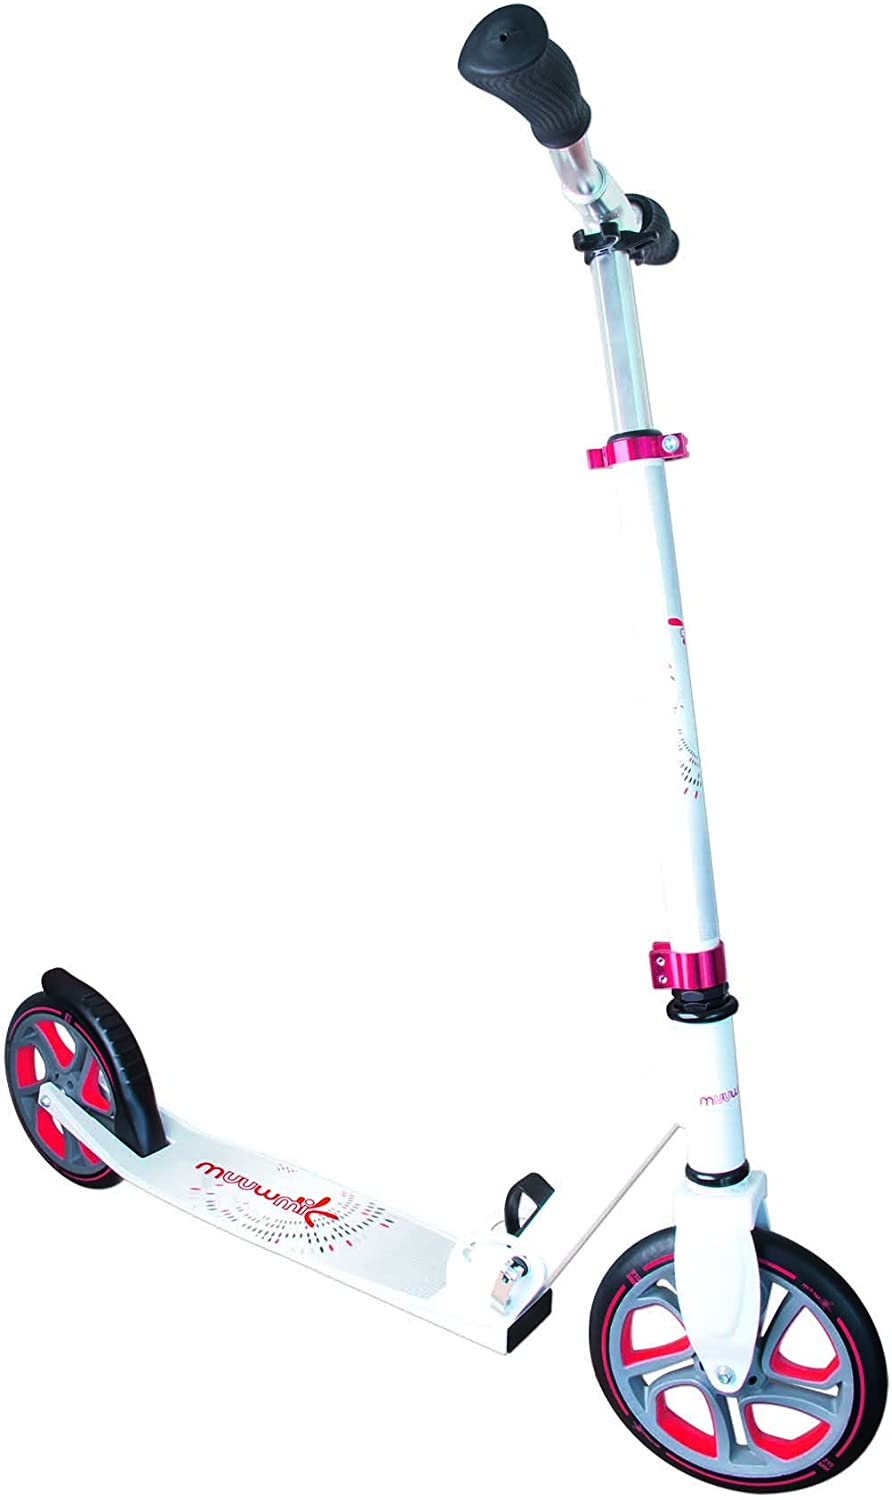 Authentic Sports 341 Aluminum scooter Muuwmi White Red 215